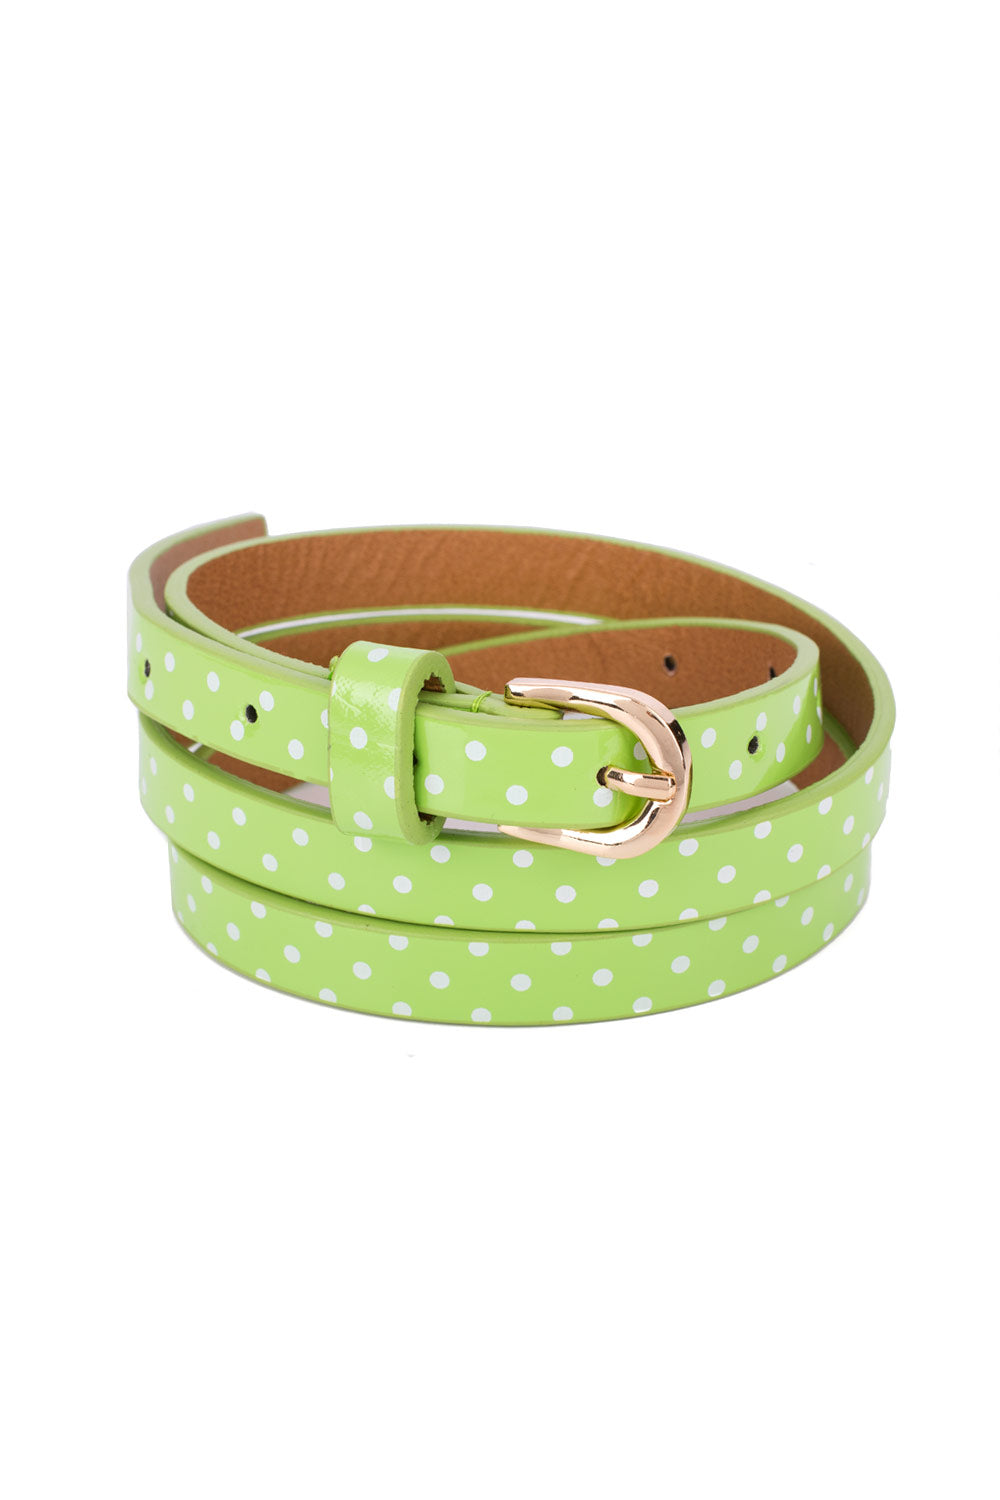 Type 1 Granny Smith Belt